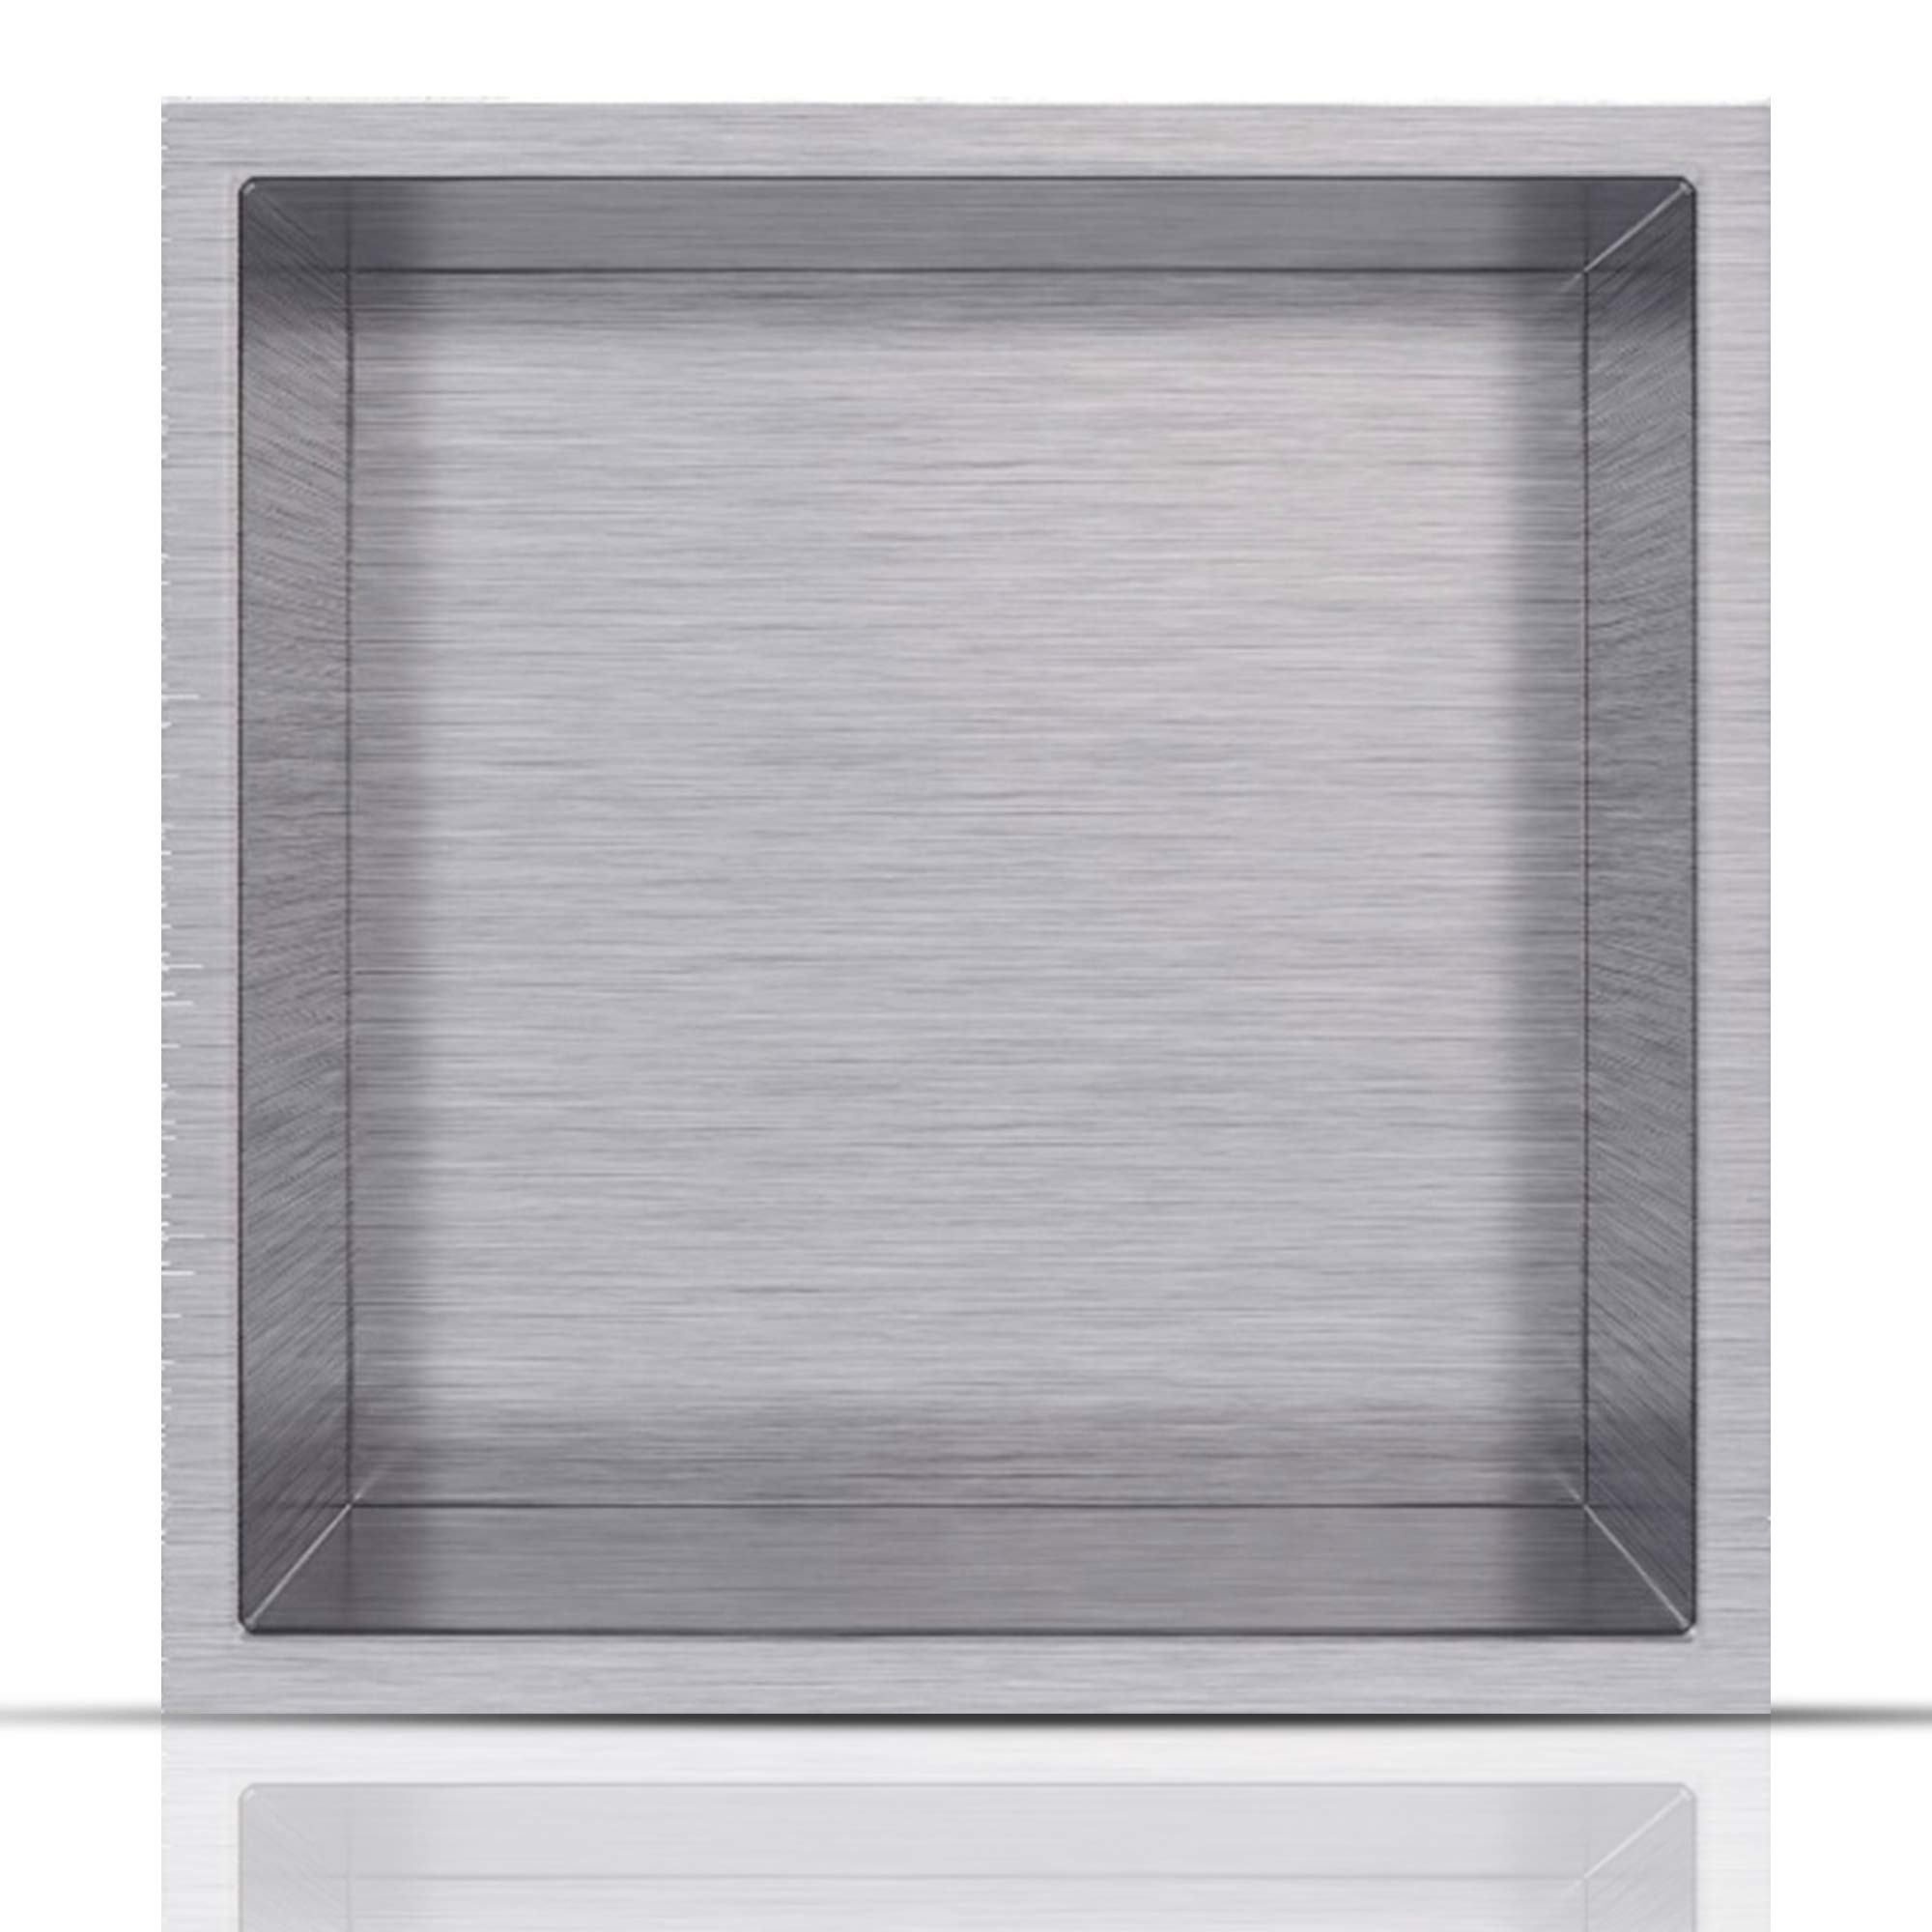 Shower Niche 12'' x 12'' Stainless Steel | Elegant Design | In Wall Shell Installation for Bathroom | Color: Brush Nickel